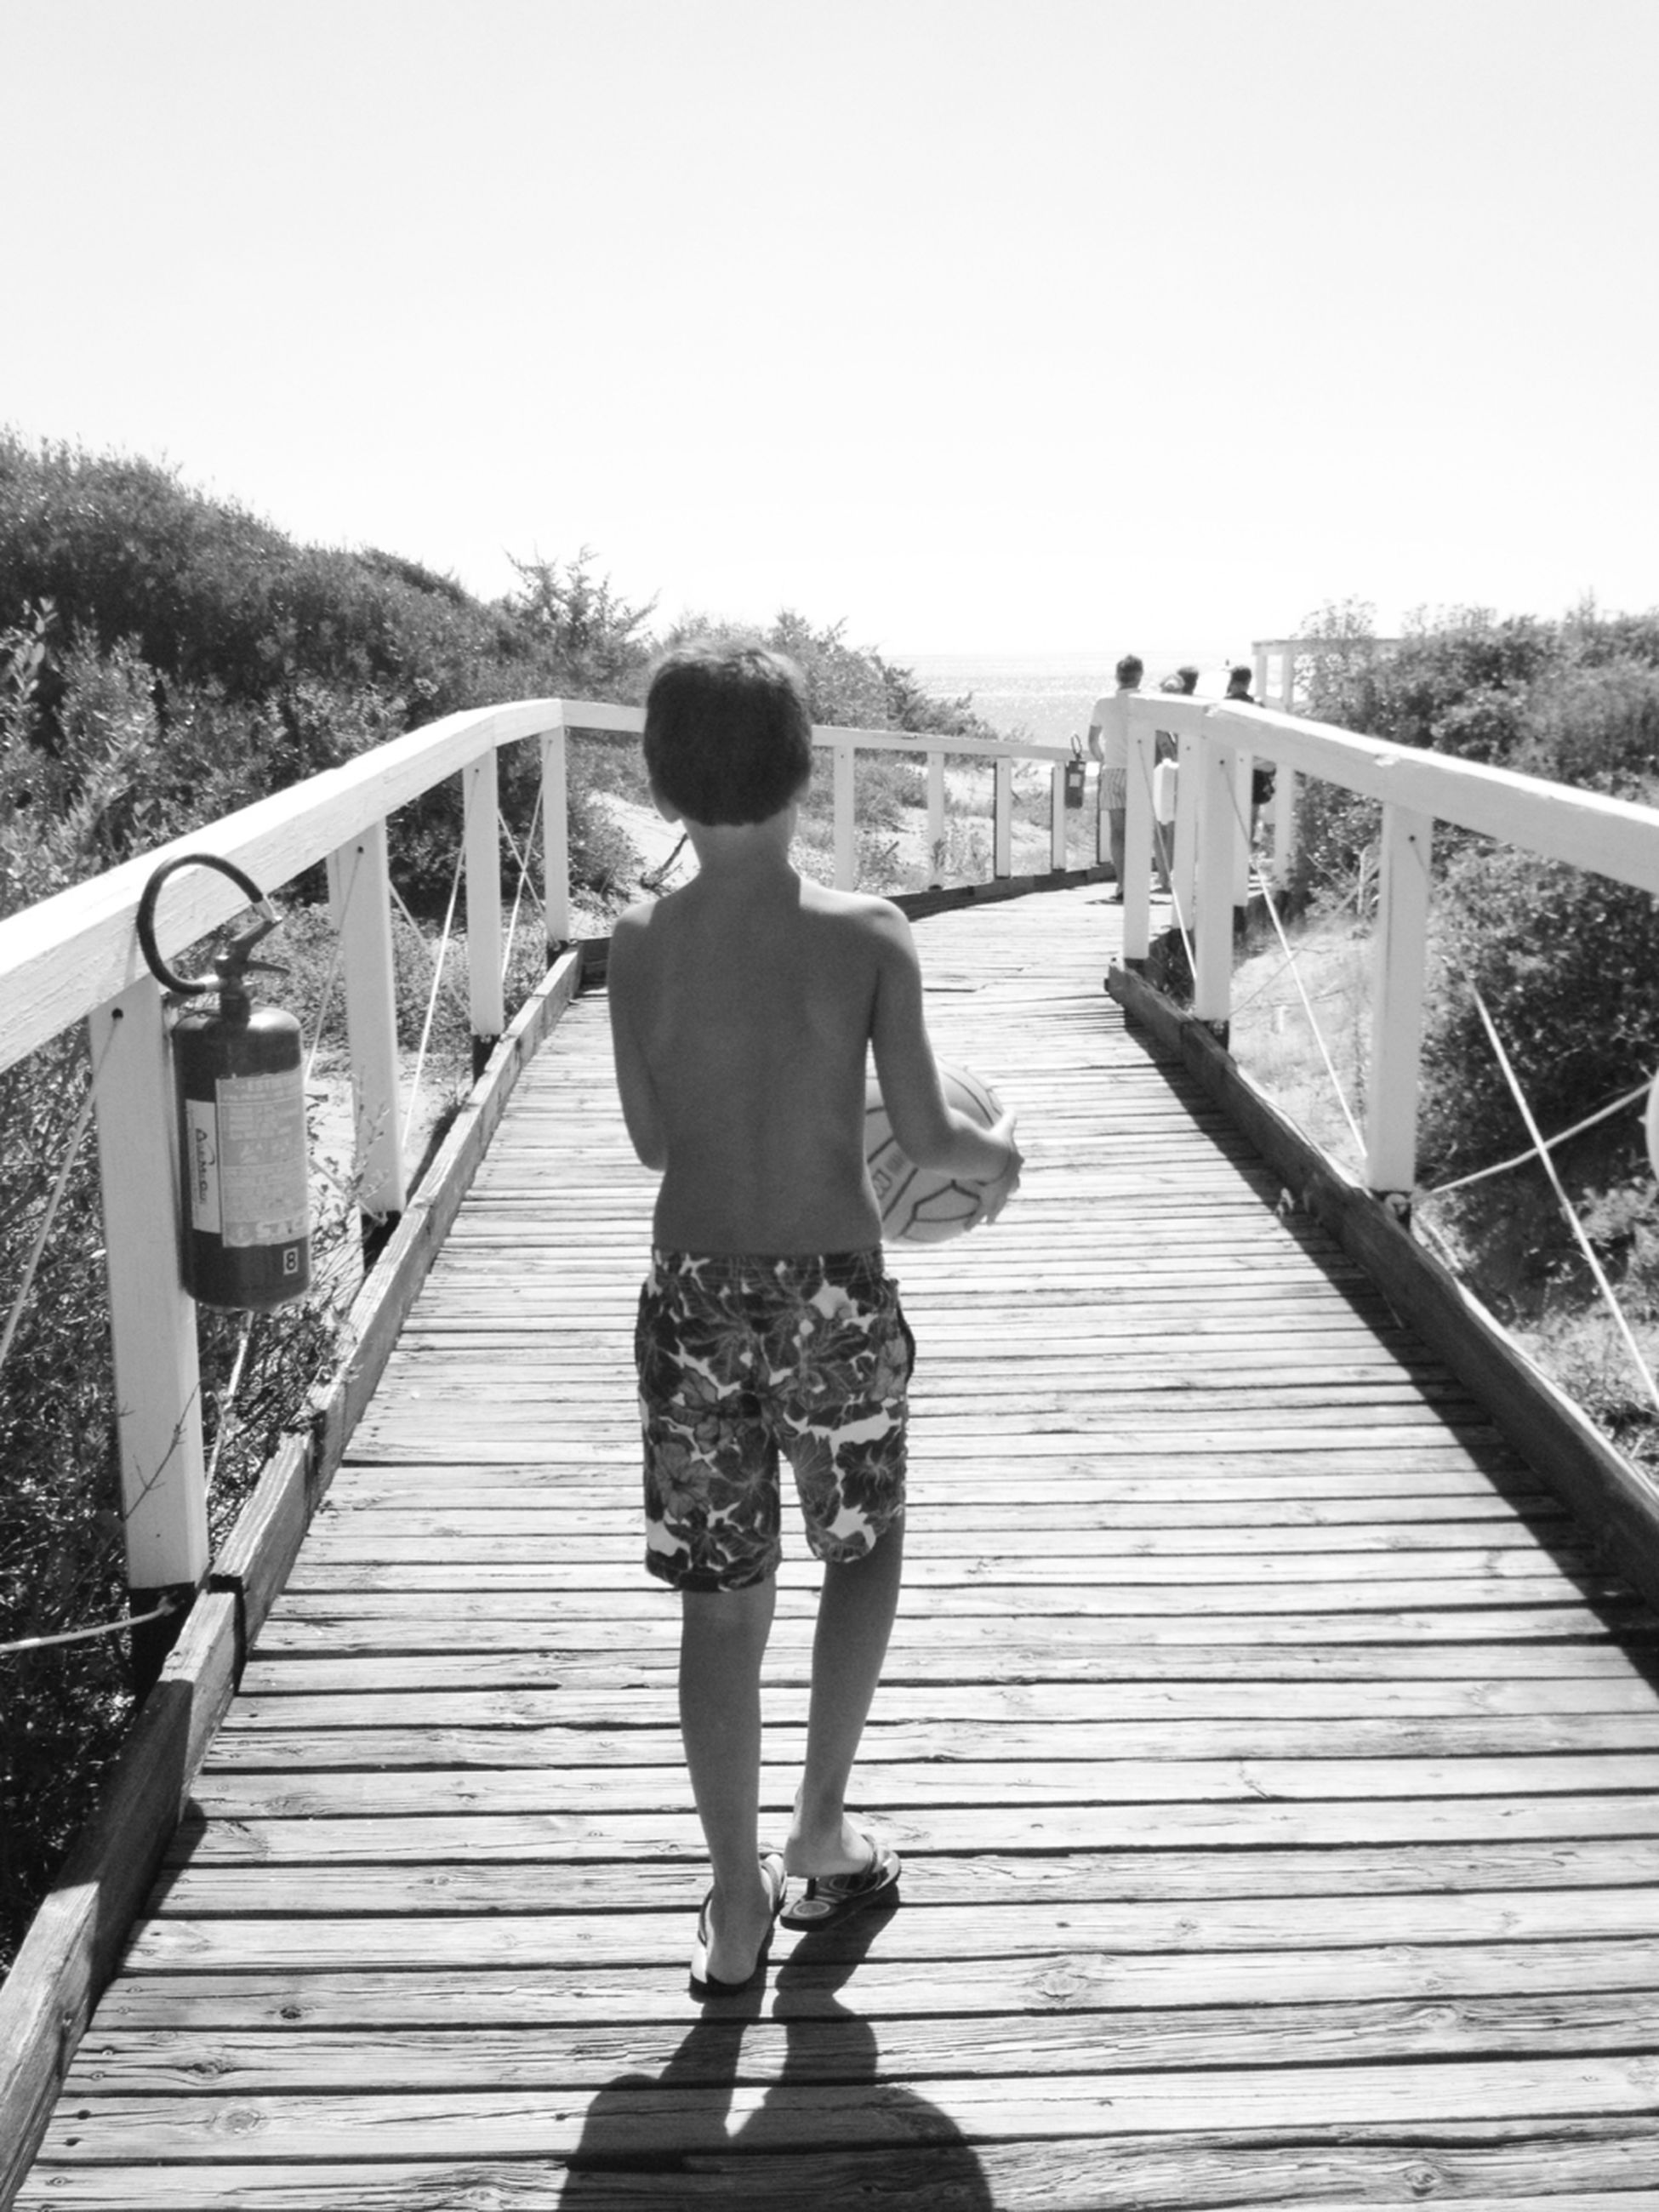 railing, full length, lifestyles, footbridge, rear view, leisure activity, the way forward, bridge - man made structure, connection, casual clothing, boardwalk, wood - material, clear sky, standing, walking, bridge, water, pier